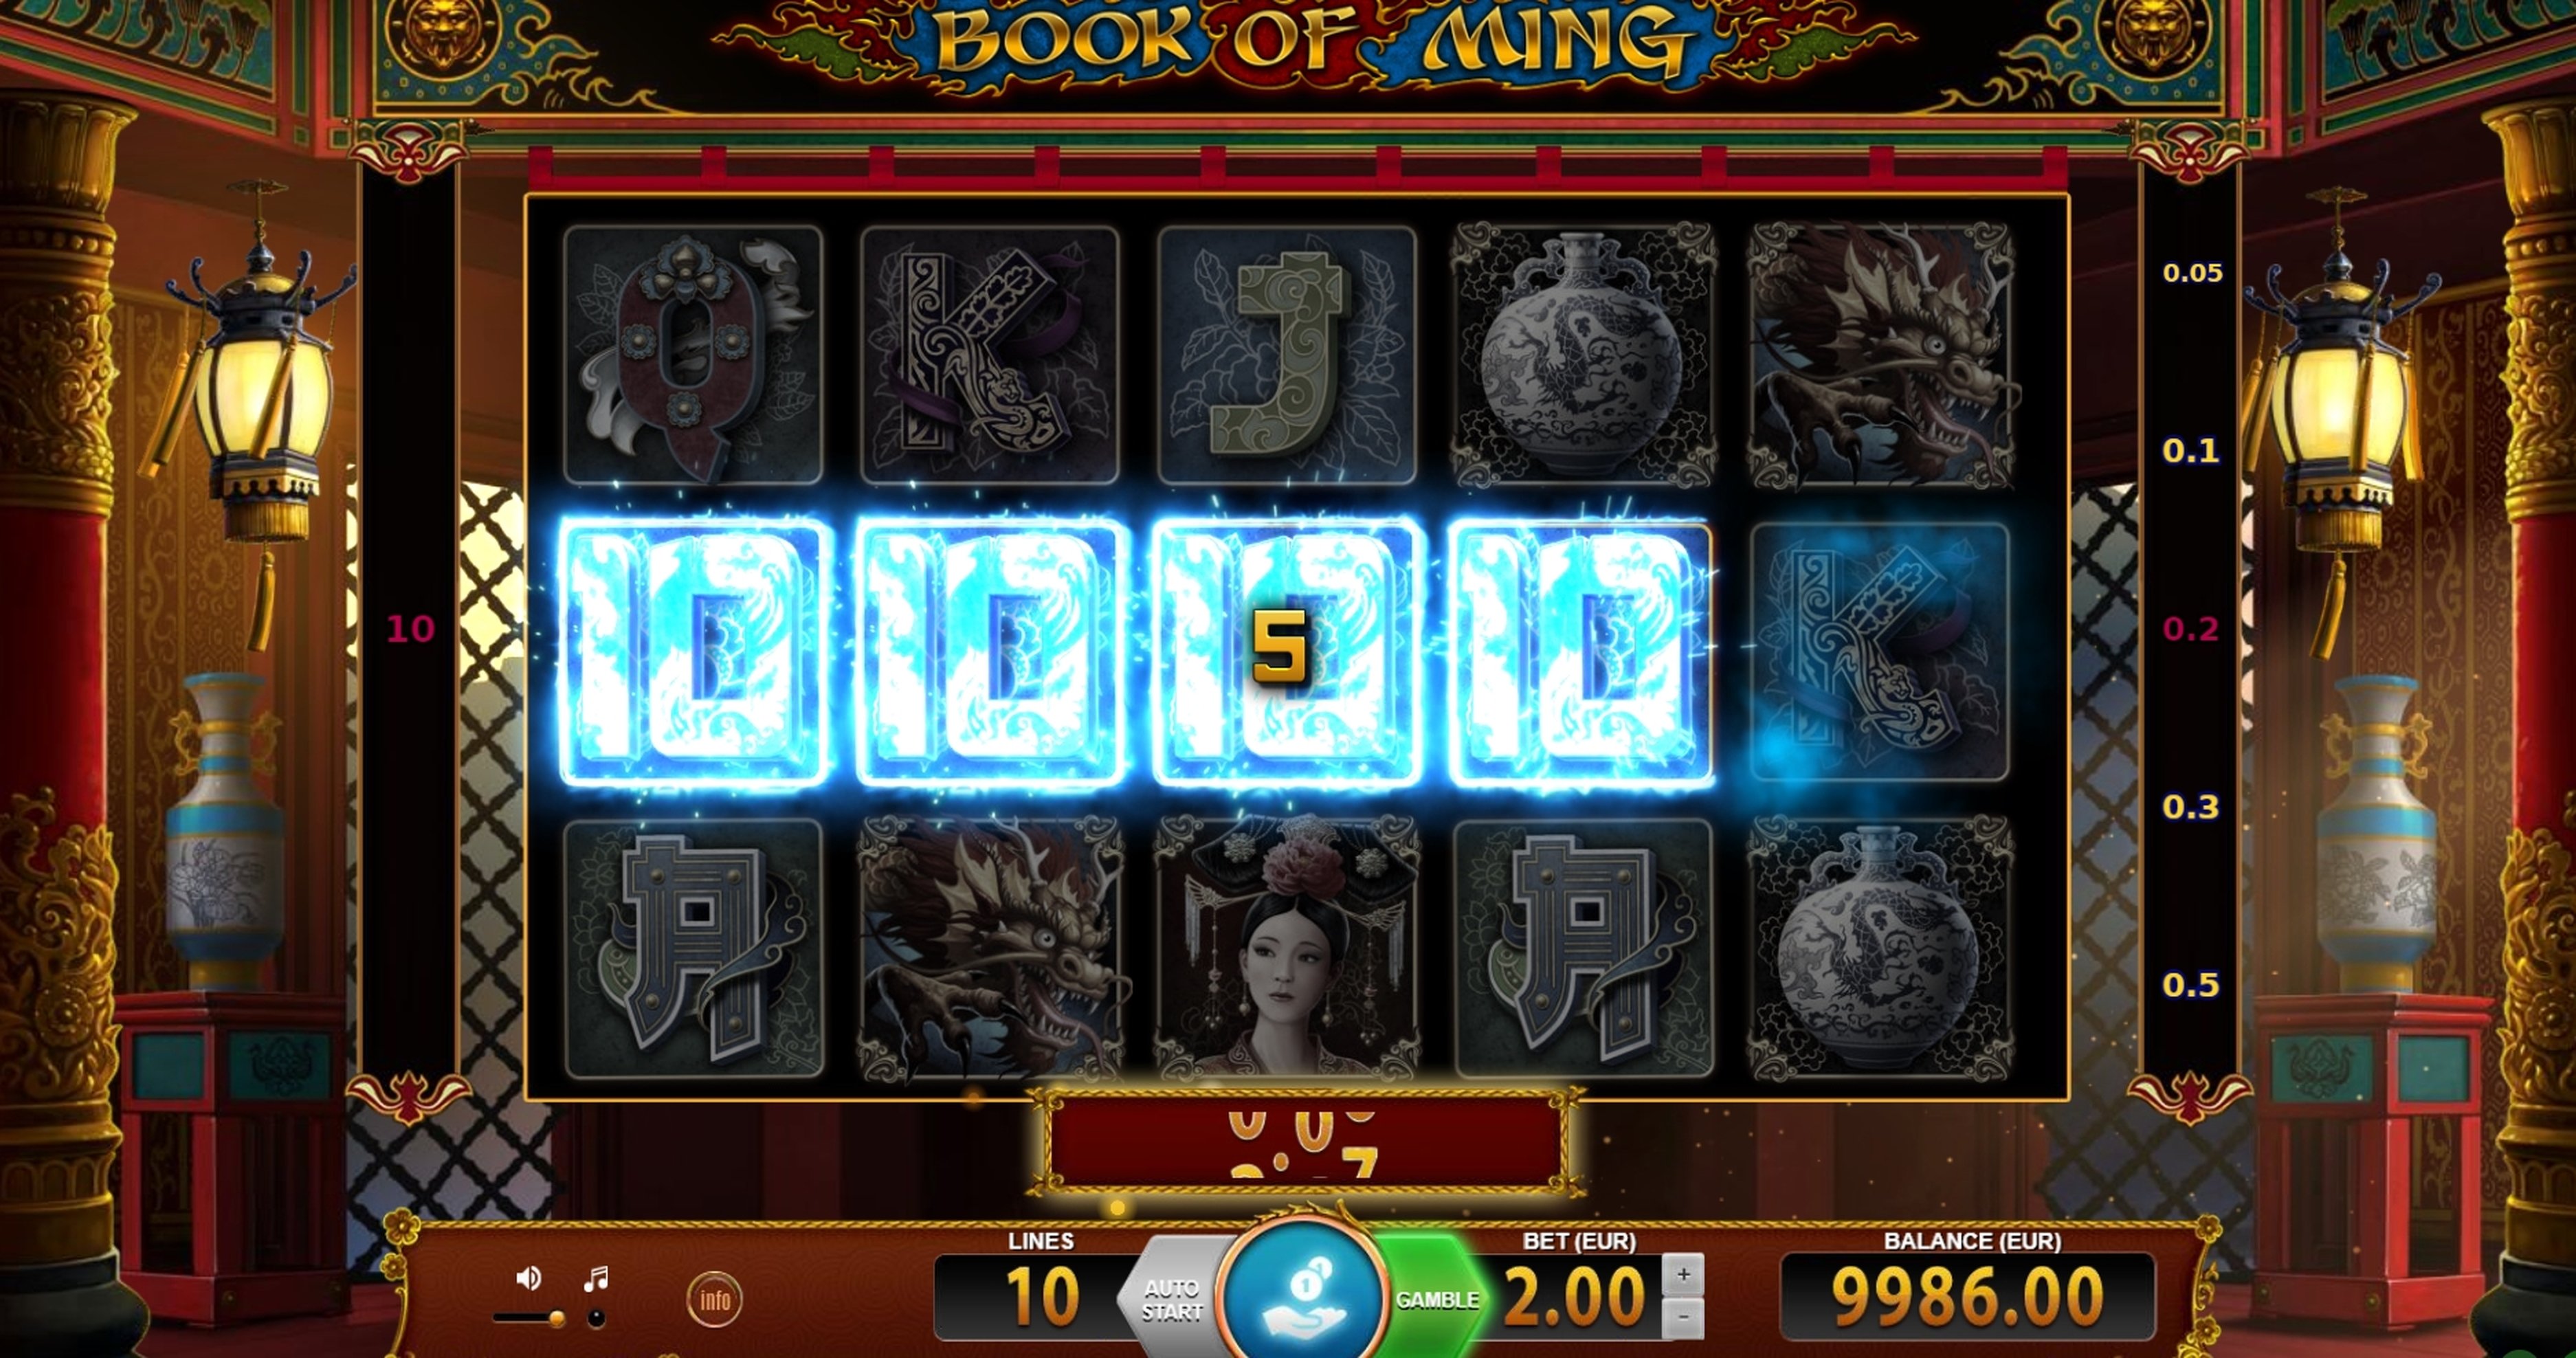 Win Money in Book of Ming Free Slot Game by BF games